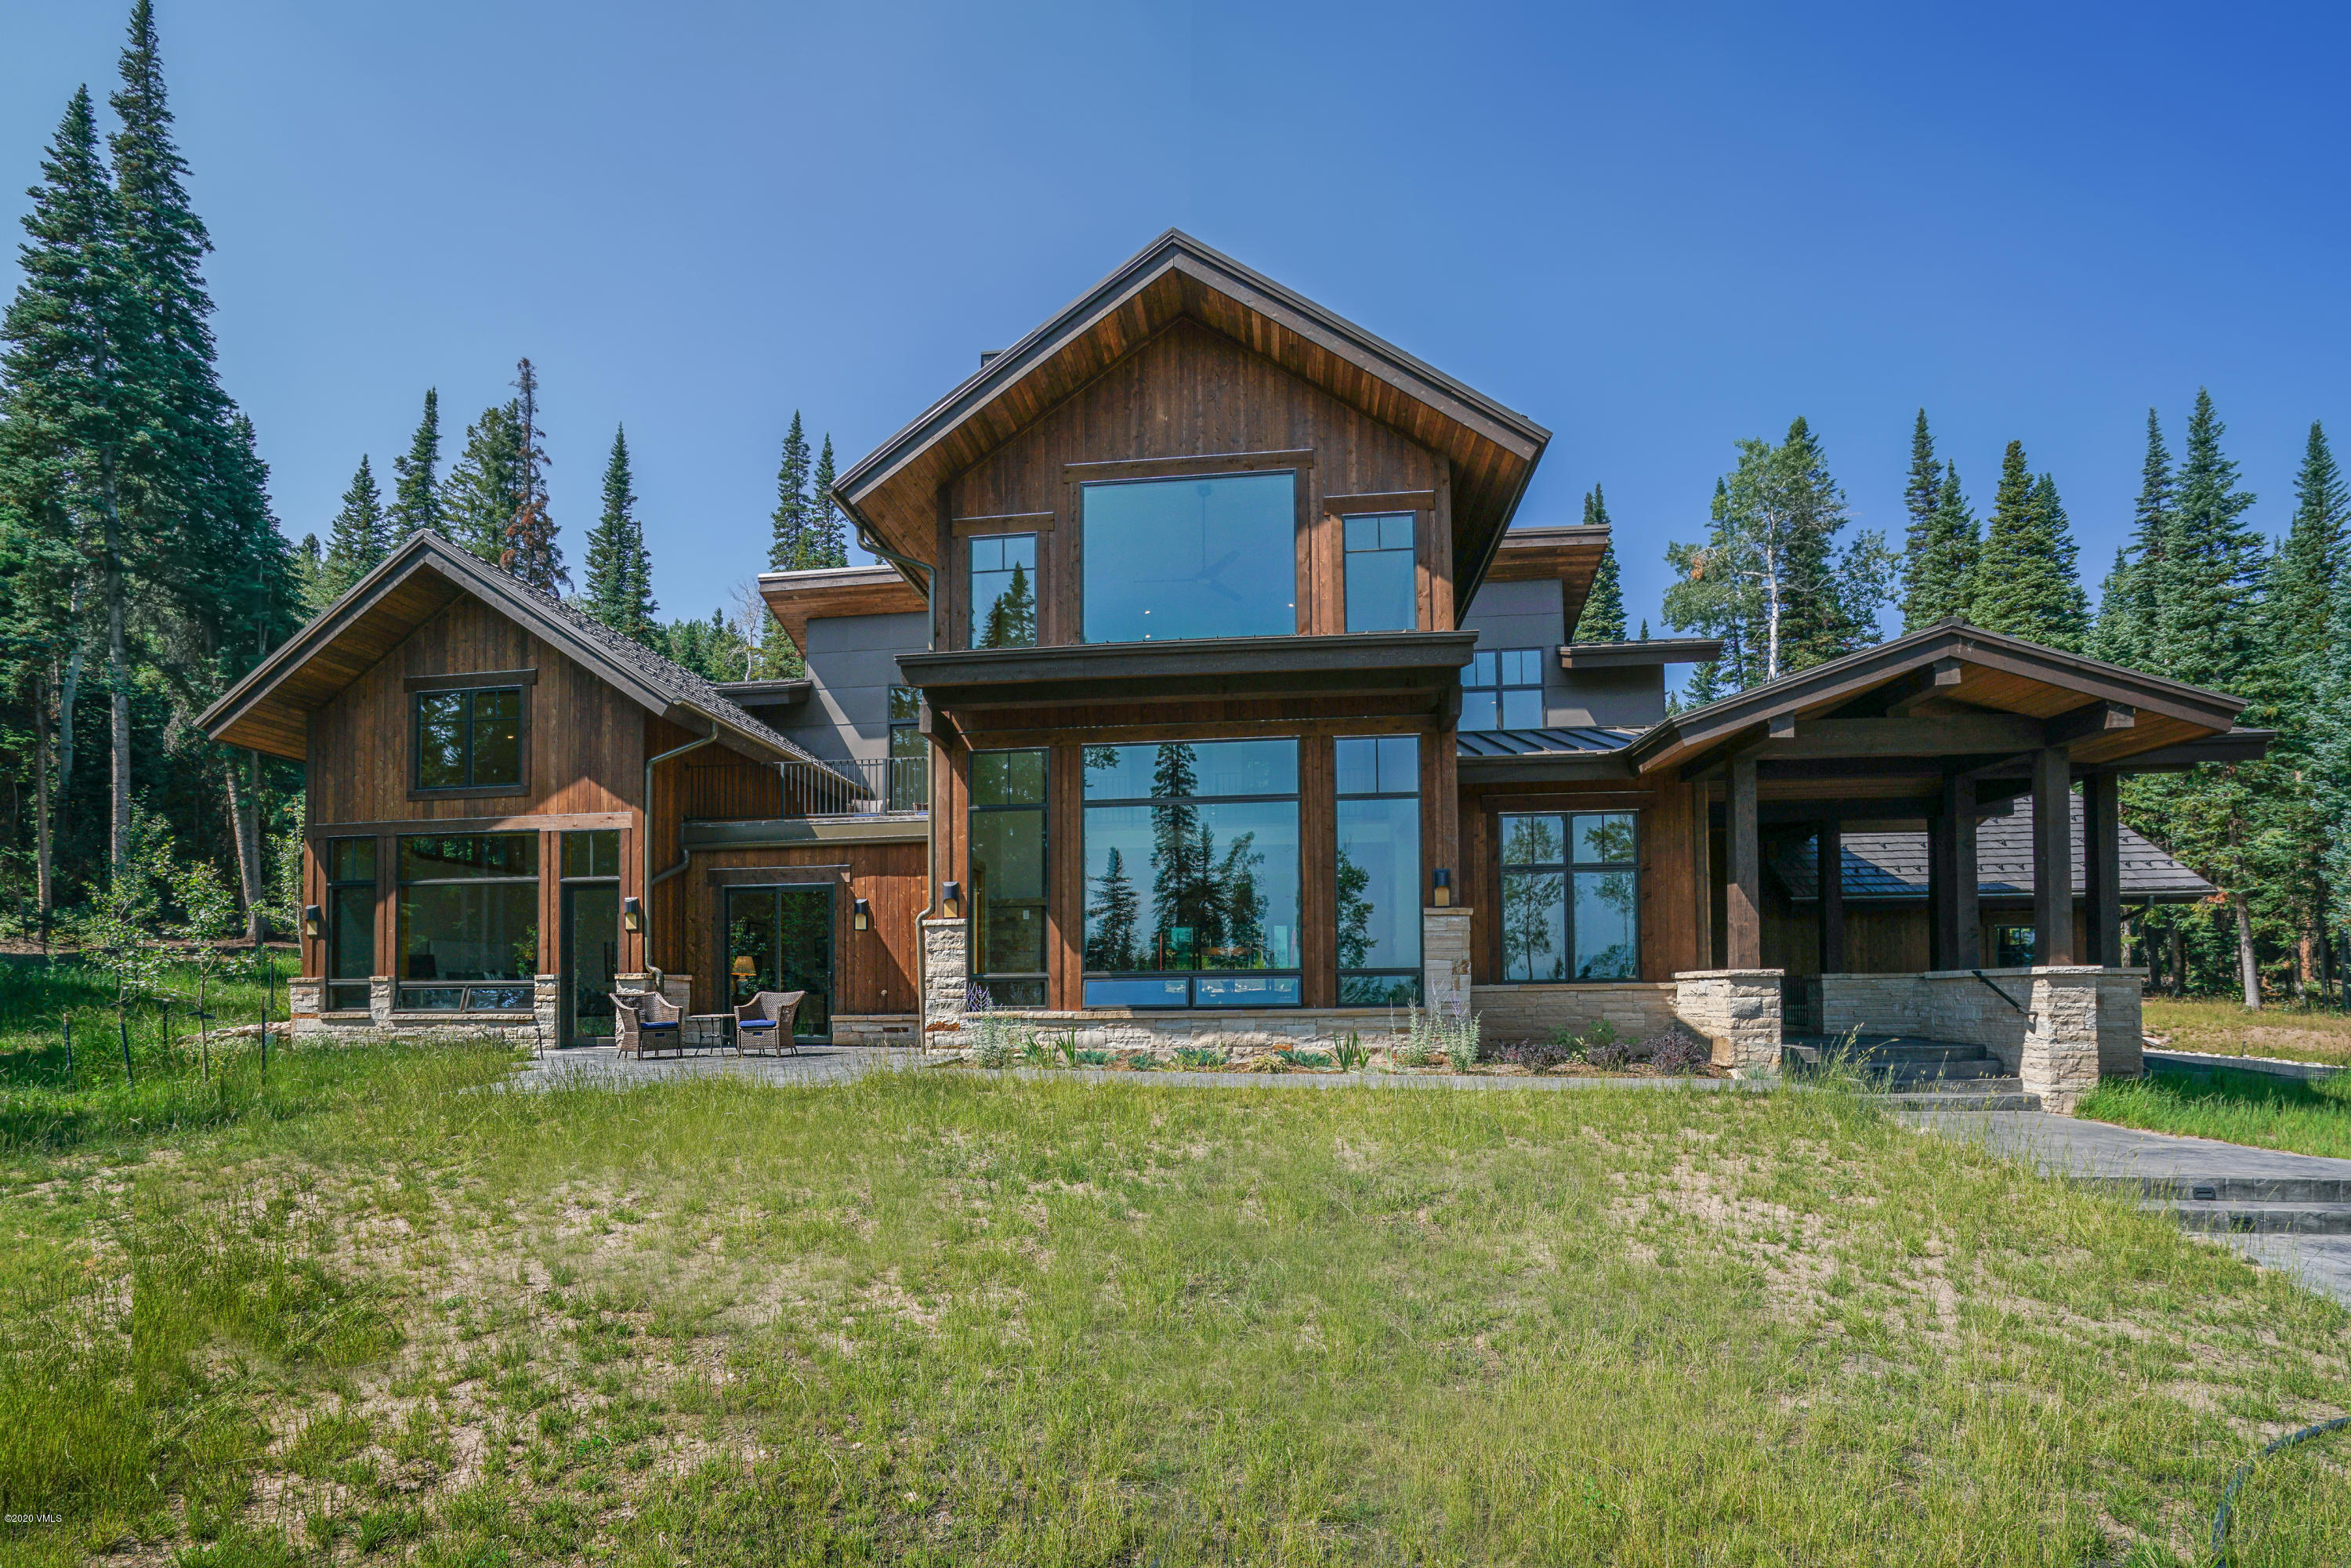 Spectacular new construction in Cordillera Summit showcasing unobstructed views of the Gore Range and Knee Knocker Pass. Enjoy superior privacy on this wooded lot surrounded by tall subalpine firs and aspens in a gated community with the Cordillera pond across the way.  Under 4,500 square feet in Cordillera, this home was just completed July 2019 by builder, Concept 30 LLC, Bernie Weber Contractor and RAL Architecture, Bobby Ladd Architect. With a high level of attention to detail, it is the perfect mountain contemporary blend with a timeless design. Featuring alder wood trim, walnut cabinetry, vaulted ceilings, and white oak floors throughout, this home was masterfully crafted with high quality materials and finishes. Soak in the stunning Vail Valley landscape from the huge windows in the great room in front of the stone gas fireplace.This open concept floor plan was thoughtfully designed with the living room flowing to the kitchen and dining room with sliding glass doors opening up to the outdoor patio and fire pit. The large back patio is the ideal mountain setting to gather and entertain, with quick accessibility to the kitchen and the front patio shows off mature trees framing gorgeous Gore Range views. Additionally, the back patio is wired for a hot tub and is plumbed for a gas grill. Top of the line appliances include a Wolf gas cooktop, double-oven, & microwave, a Sub-Zero refrigerator, ASKO dishwasher, and a U-Line under counter beverage refrigerator & wine refrigerator. Also on the main-level, is the master bedroom suite with its own walk-out patio and steam shower in the master bath, as well as two well-equipped offices (one could easily be used as a bedroom). The second level features three spacious bedrooms all with en-suite bathrooms, a second laundry room, a loft sitting area with a wet bar, and a deck overlooking the pristine property and mountain vistas. Lastly, the garage is wired for an electric charging station. For those seeking a new mountain m